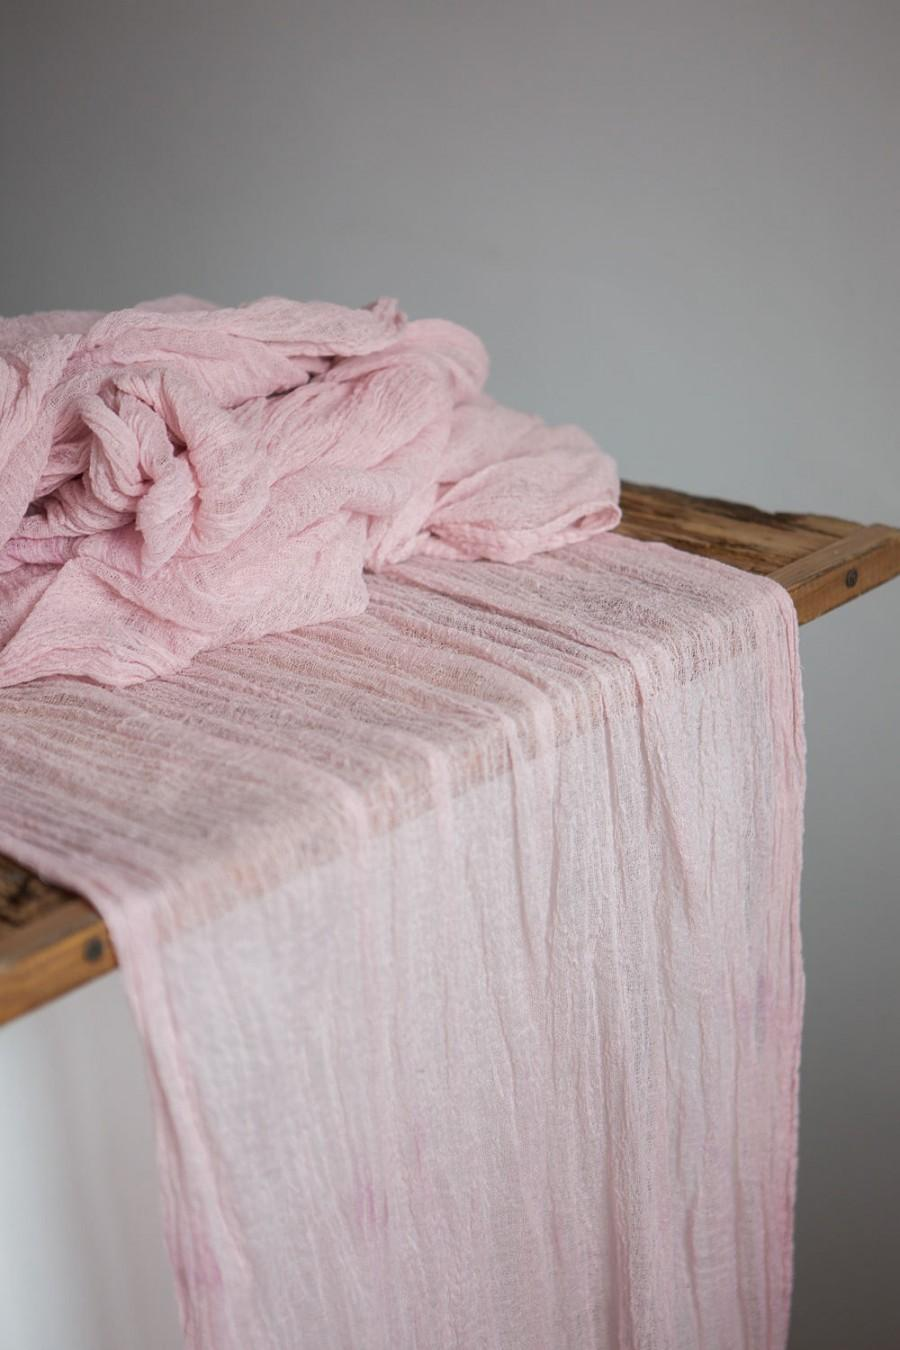 Mariage - Blush Gauze Runner for Weddings Events, Centerpieces Runner, pale rose Cheesecloth Runner, Table Hand Dyed runner, Cotton Scrim, table decor